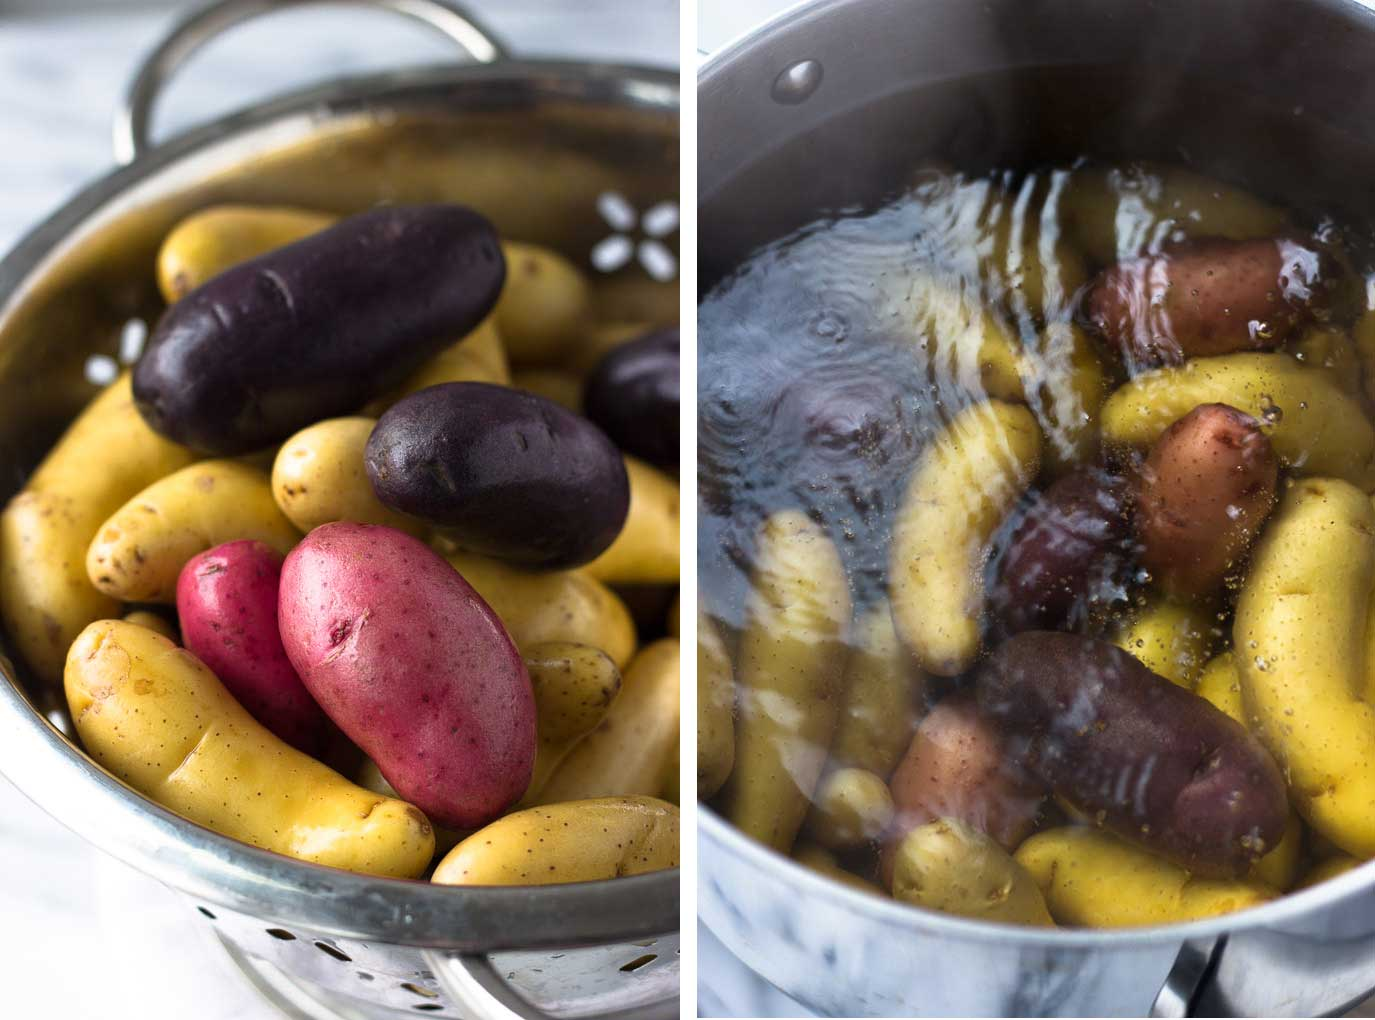 Crispy Garlic Roasted Fingerling Potatoes - An easy side dish ready in under 30 minutes - with crispy potato skins and a soft, melt-in-your-mouth interior, the combination of garlic butter and Fingerling potatoes is a winner! | Fork in the Kitchen